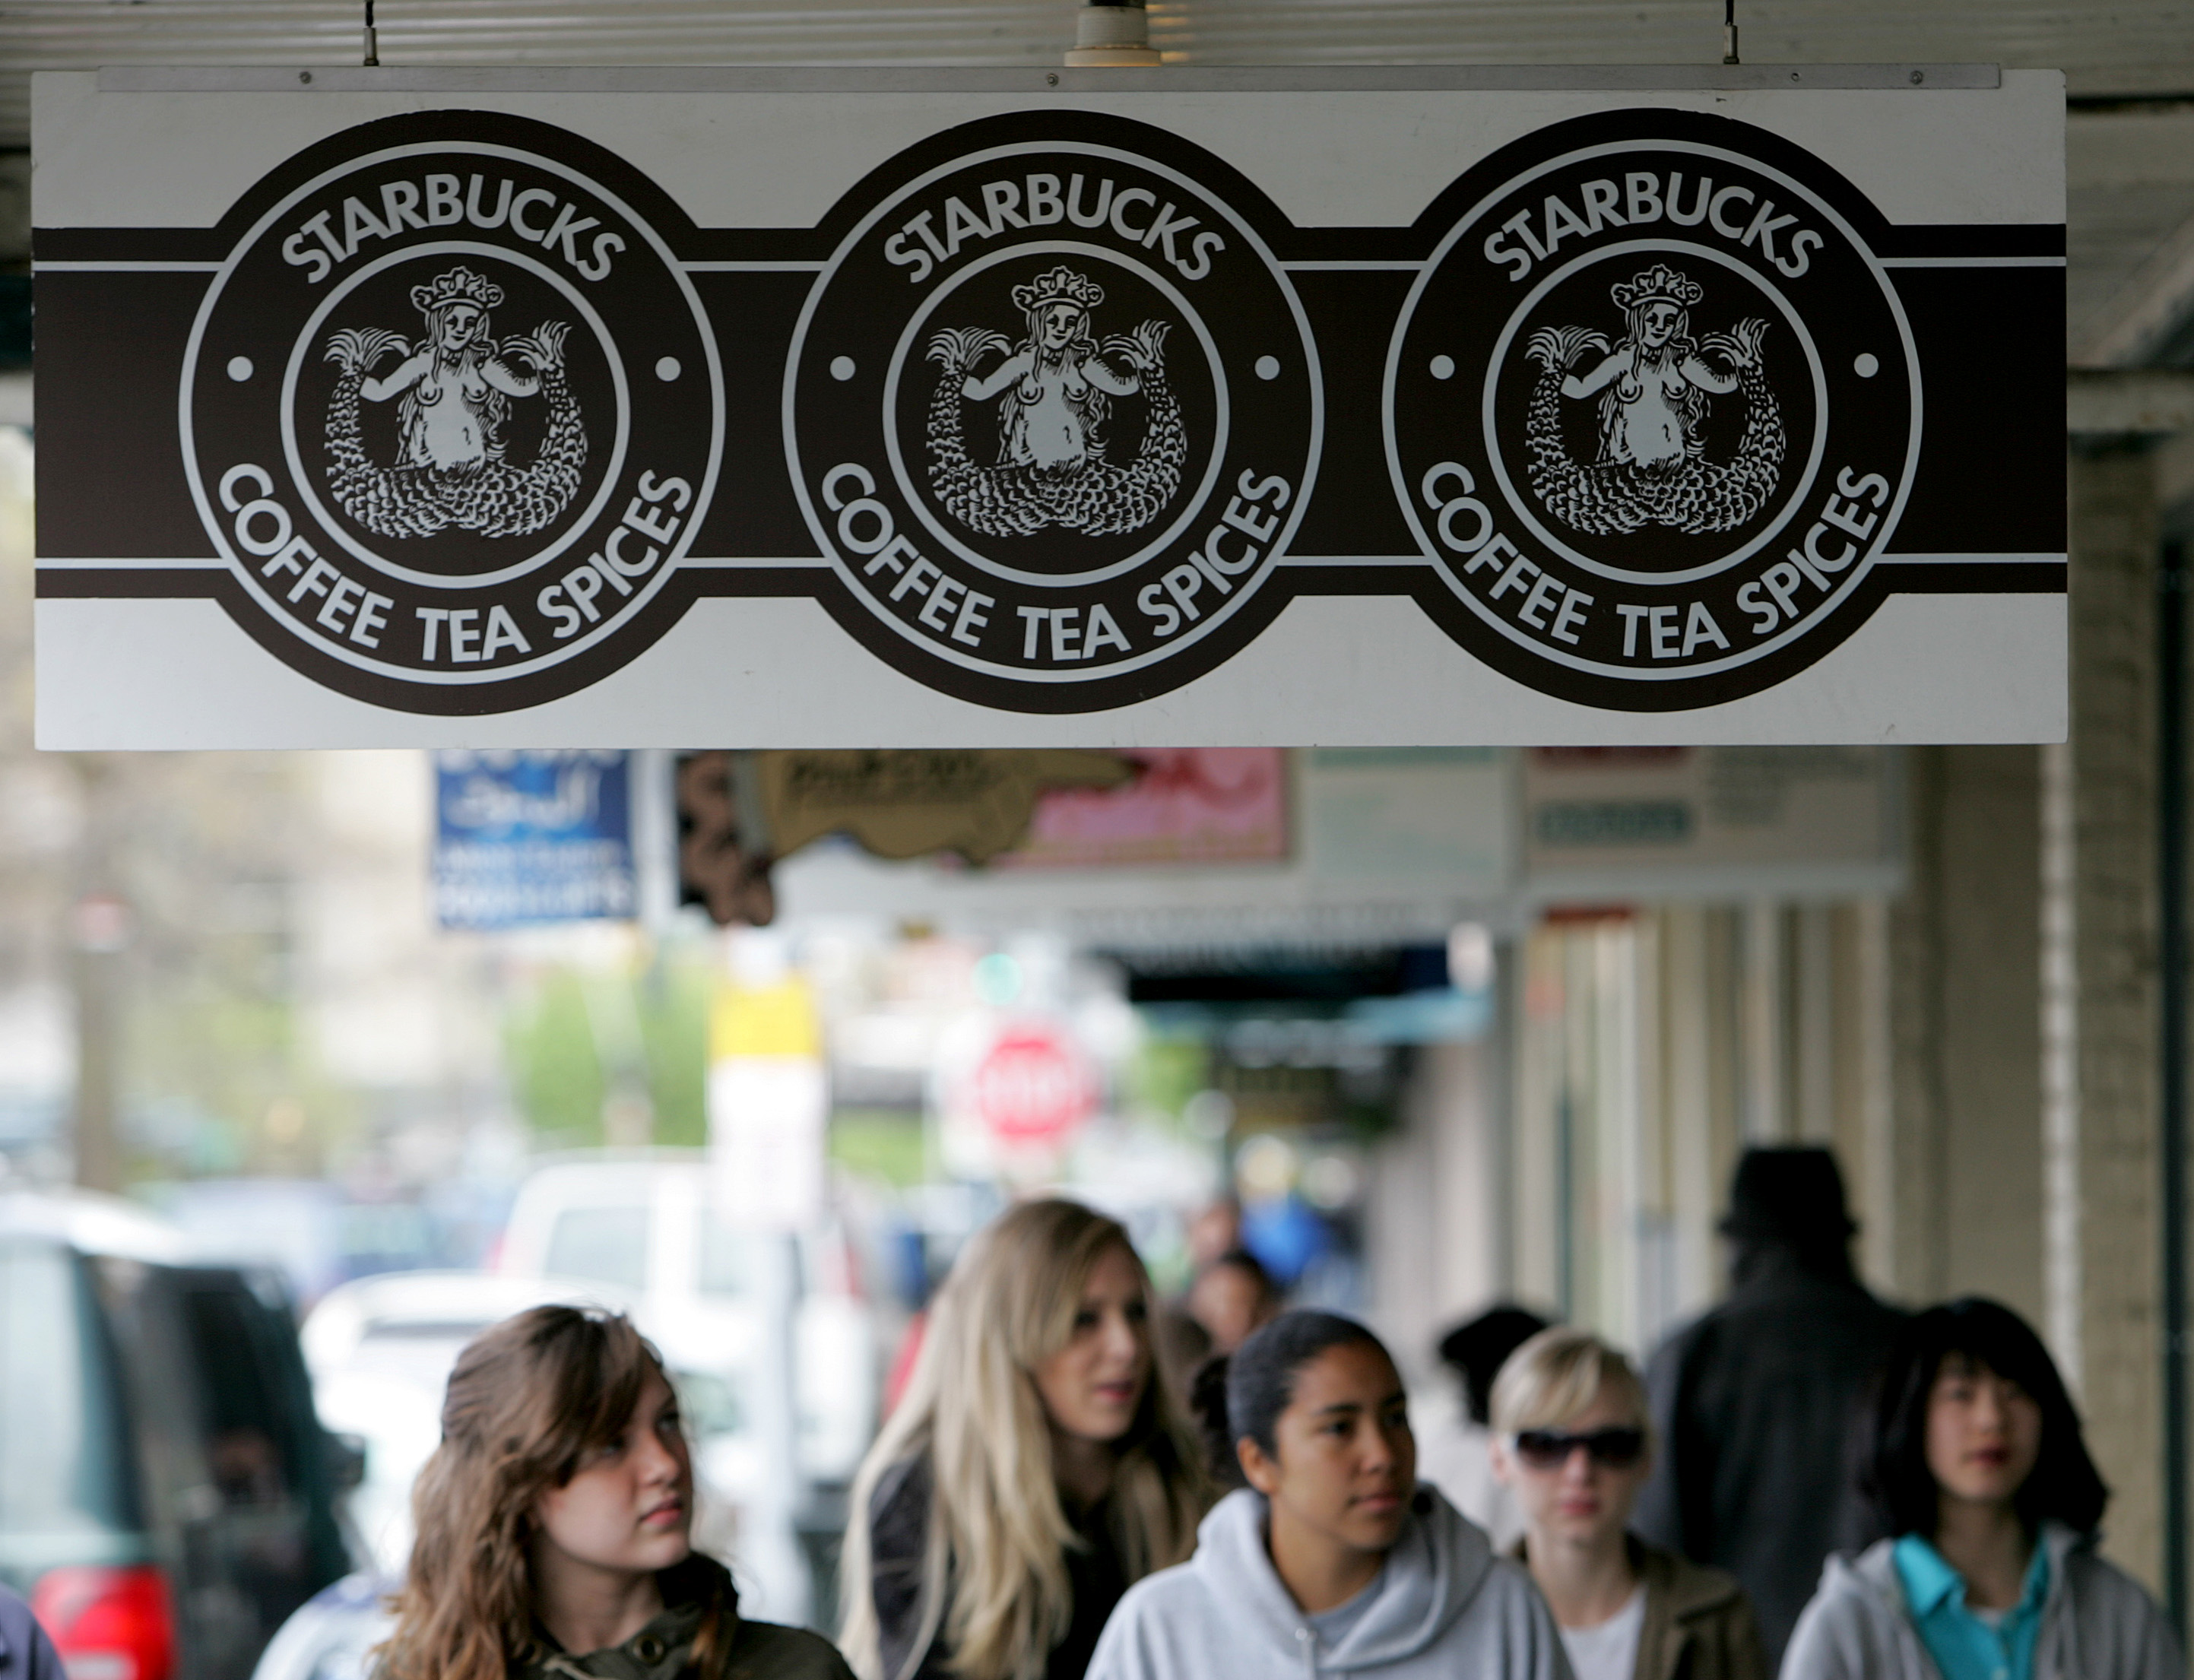 Discontent Brewing Among Some Starbucks Landlords The Spokesman Review